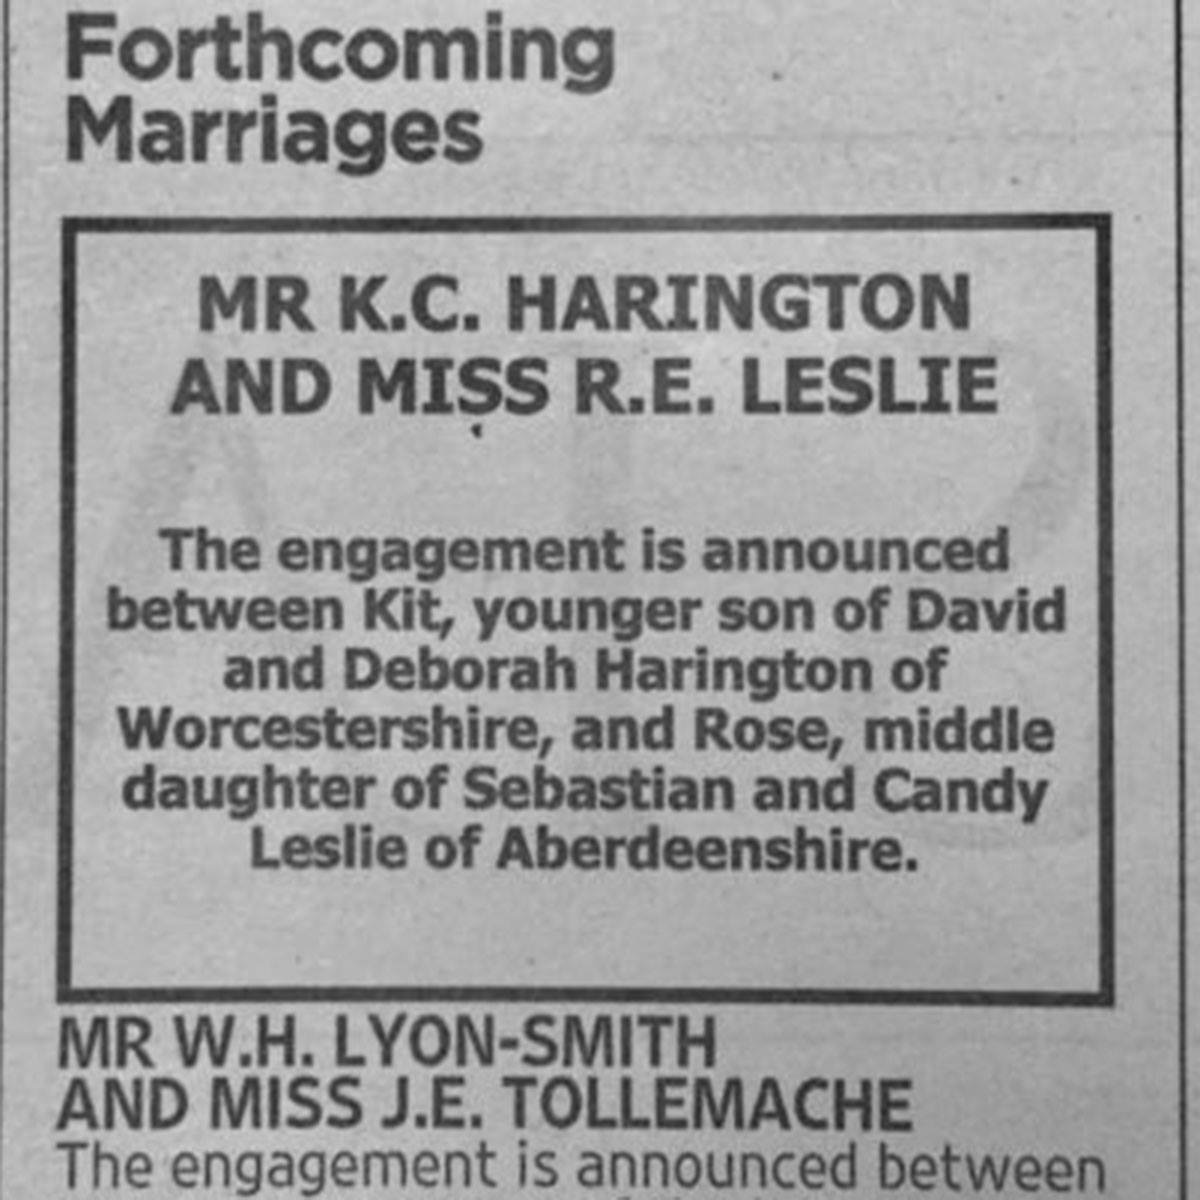 Αποτέλεσμα εικόνας για The engagement is announced between Kit, younger son of David and Deborah Harrington of Worcestershire, and Rose, middle daughter of Sebastian and Candy Leslie of Aberdeenshire